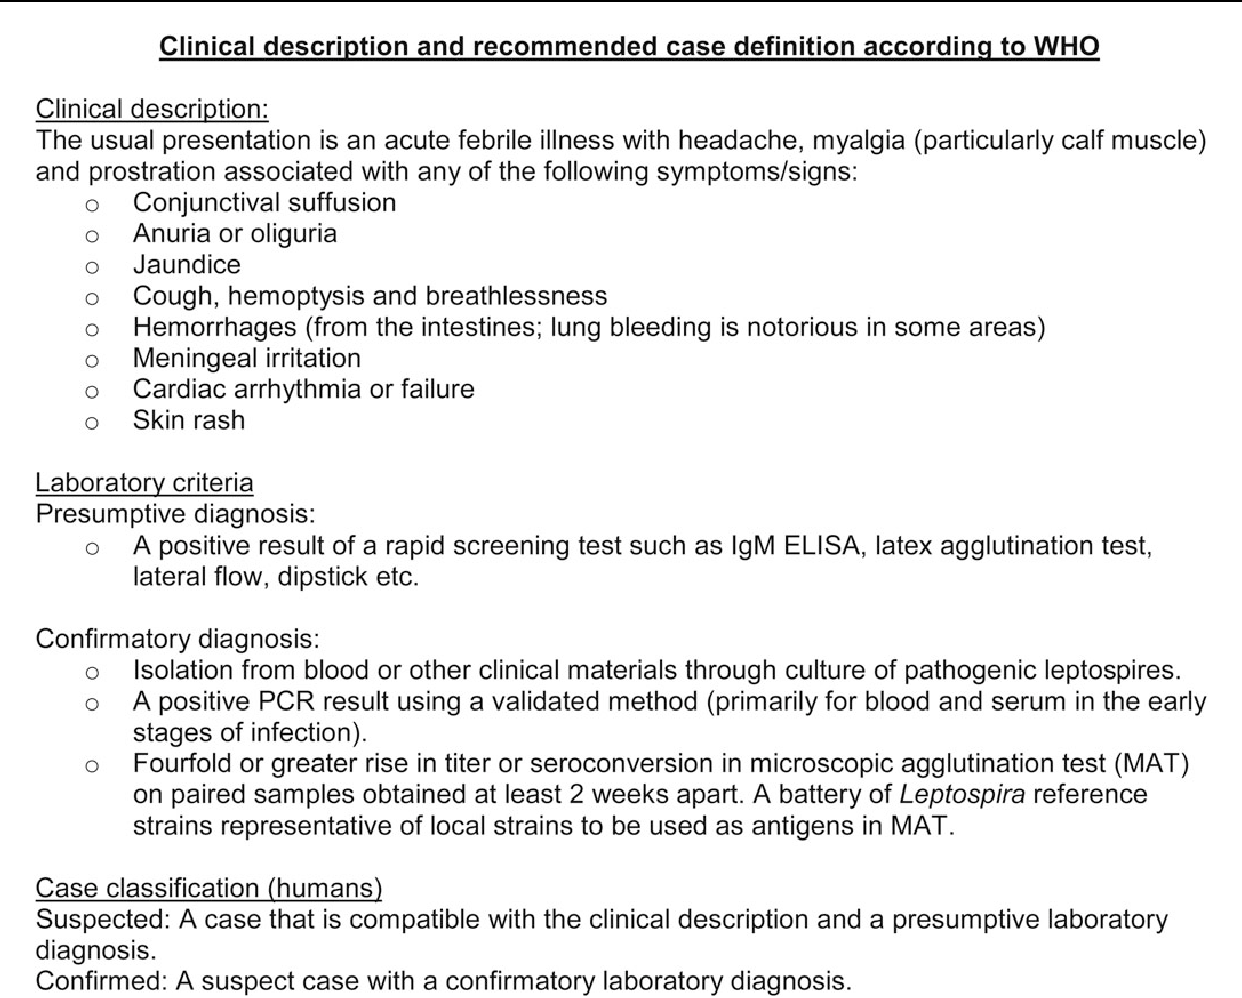 Figure 1. Clinical description and recommended case definition according to the World Health Organization (WHO). Abbreviations: ELISA, enzyme-linked immunosorbent assay; Ig, immunoglobulin; PCR, polymerase chain reaction.